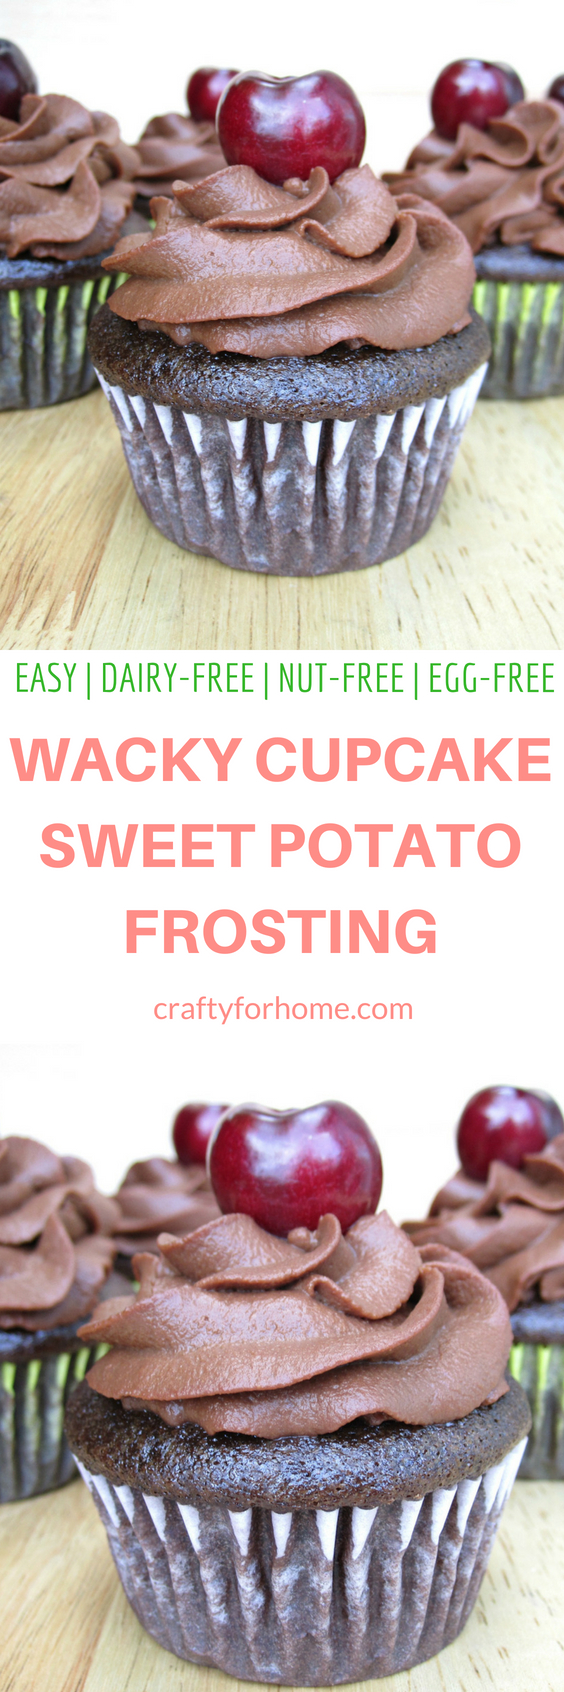 One bowl dairy-free chocolate wacky cupcake with easy sweet potato frosting. The cake is made without egg and dairy. It is moist and delicious dark chocolate cake. Dairy-free, egg-free, nut-free. #wackycake #sweetpotatofrosting #dairyfreecupcake #egglesscupcake for full recipe on craftyforhome.com